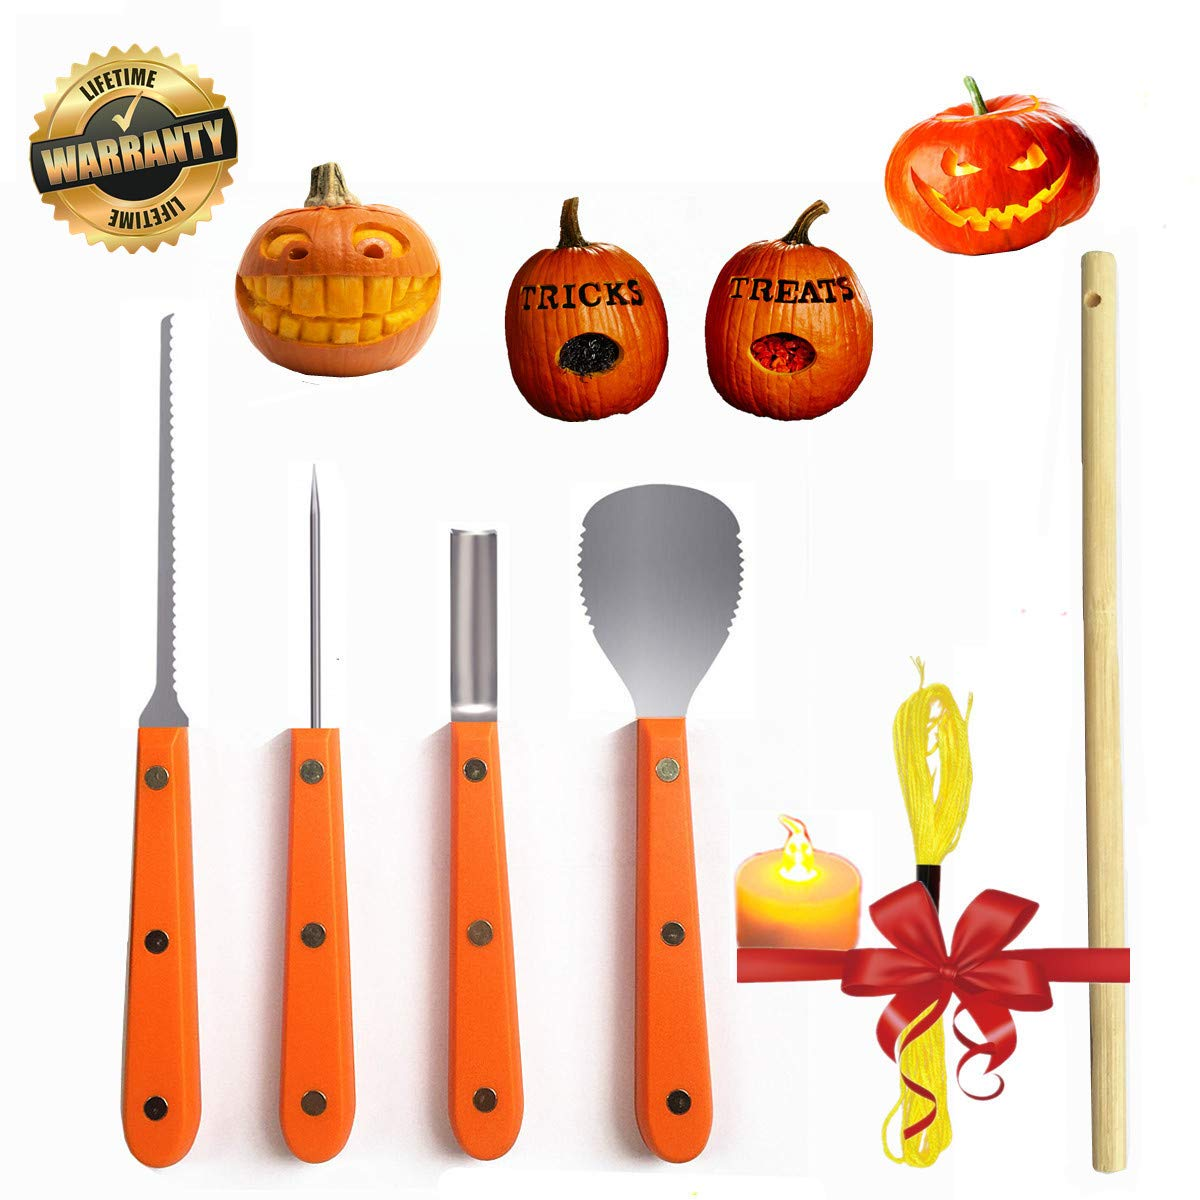 Pumpkin Carving Kit Professional Tools Stainless Steel LED Candle Wood Stick Light String Set Halloween Decoration Accessories carving set